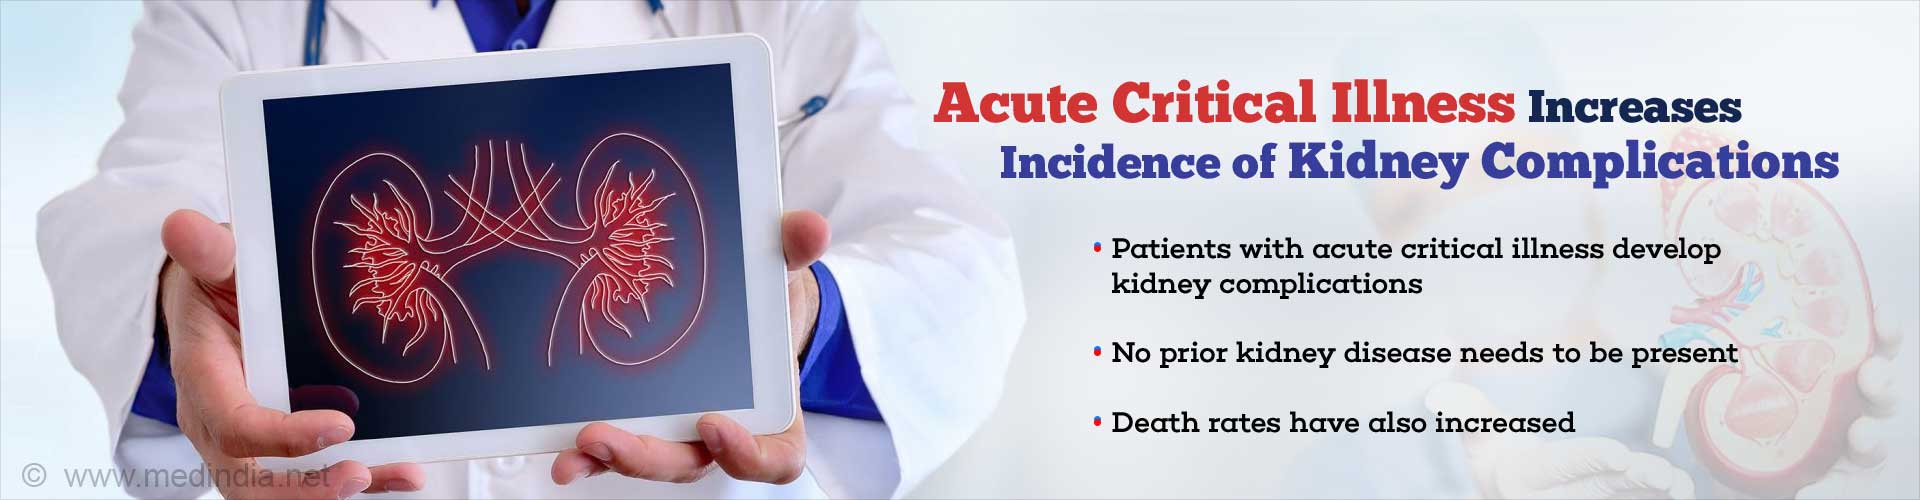 Acute Critical Illness Increases the Risk of Kidney Complications